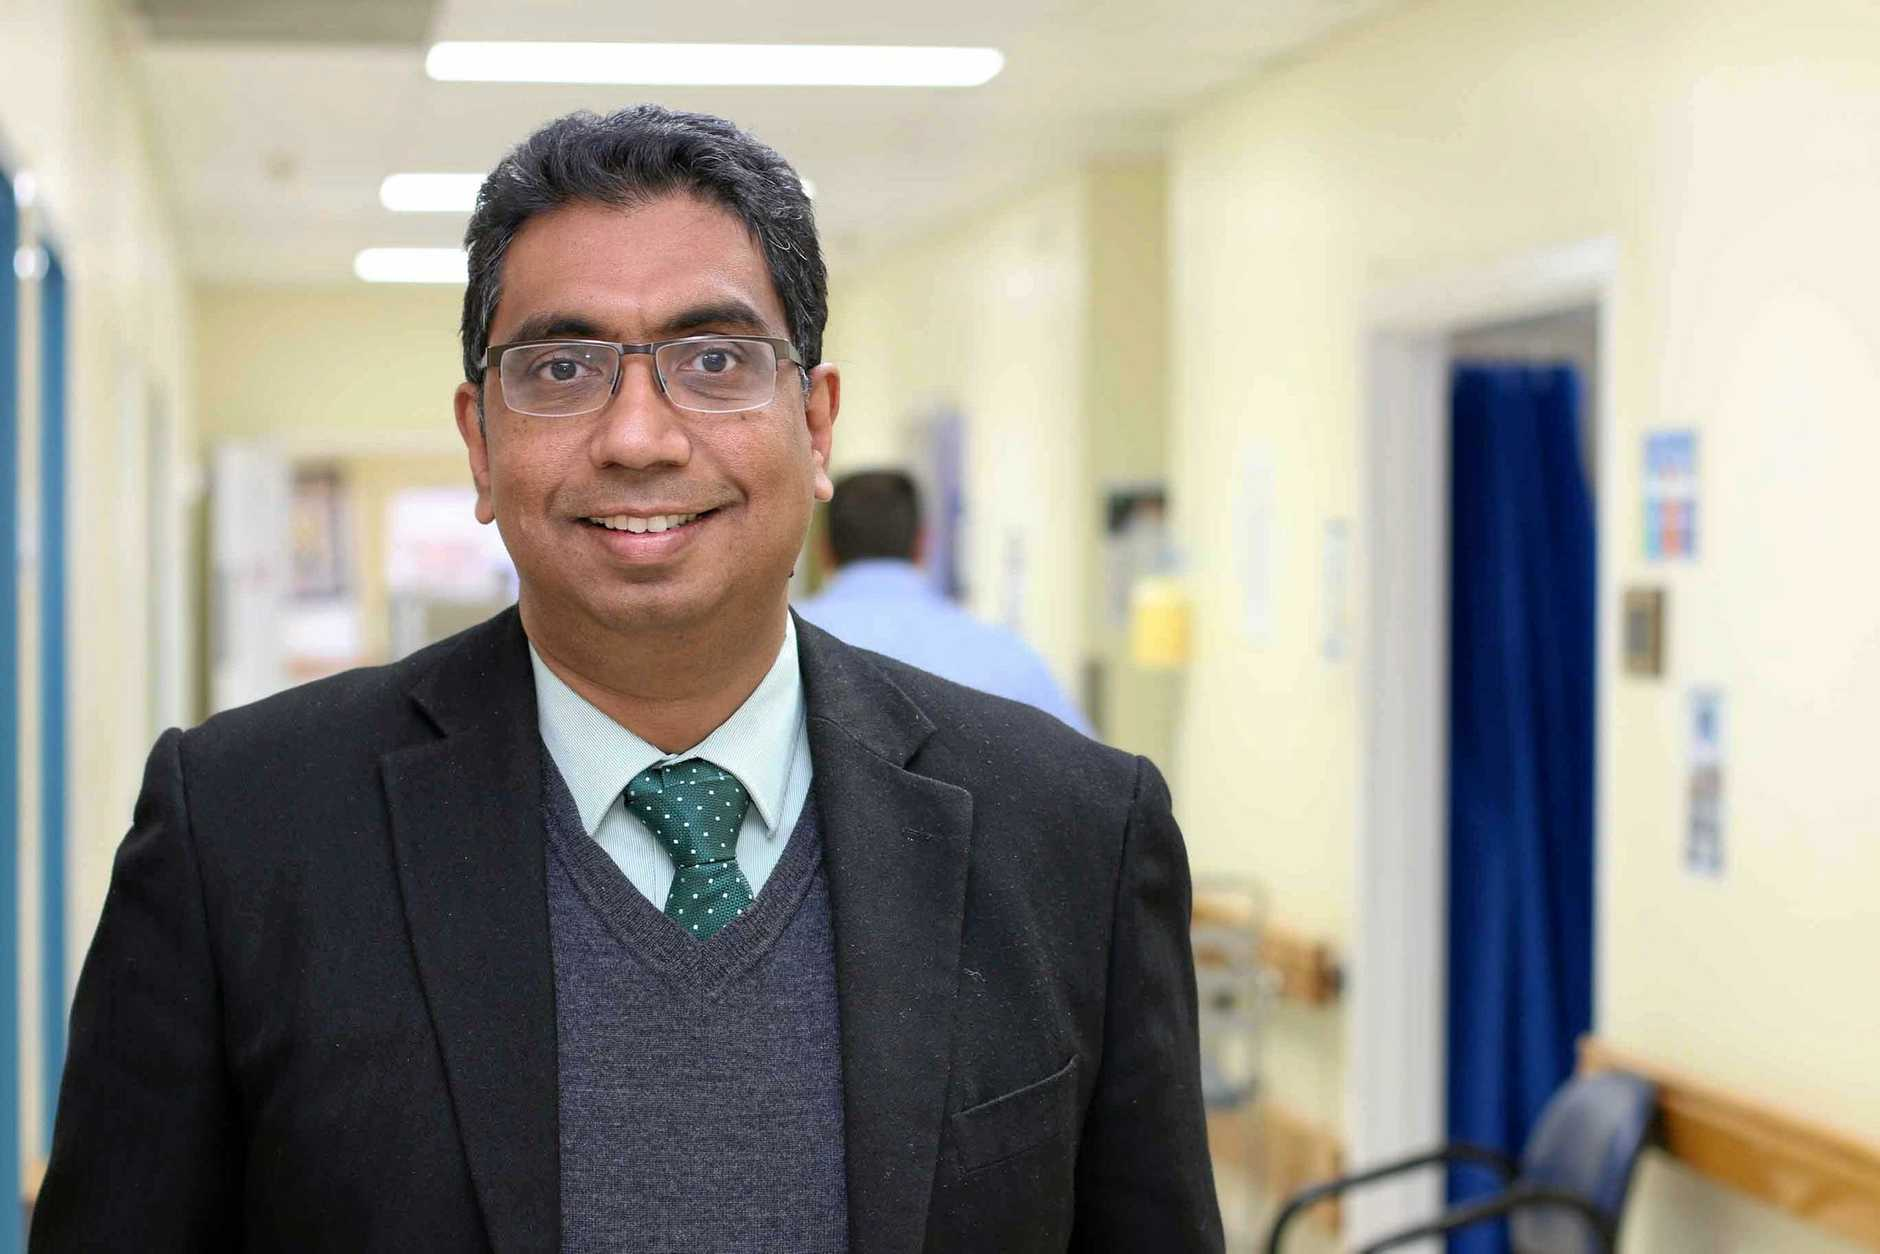 CHECK YOURSELF: Dr Nisal Gange, Director of Toowoomba Hospital's Geriatric, Adult Rehabilitation and Stroke Service said National Stroke Week serves a timely reminder to do all we can to prevent stroke.